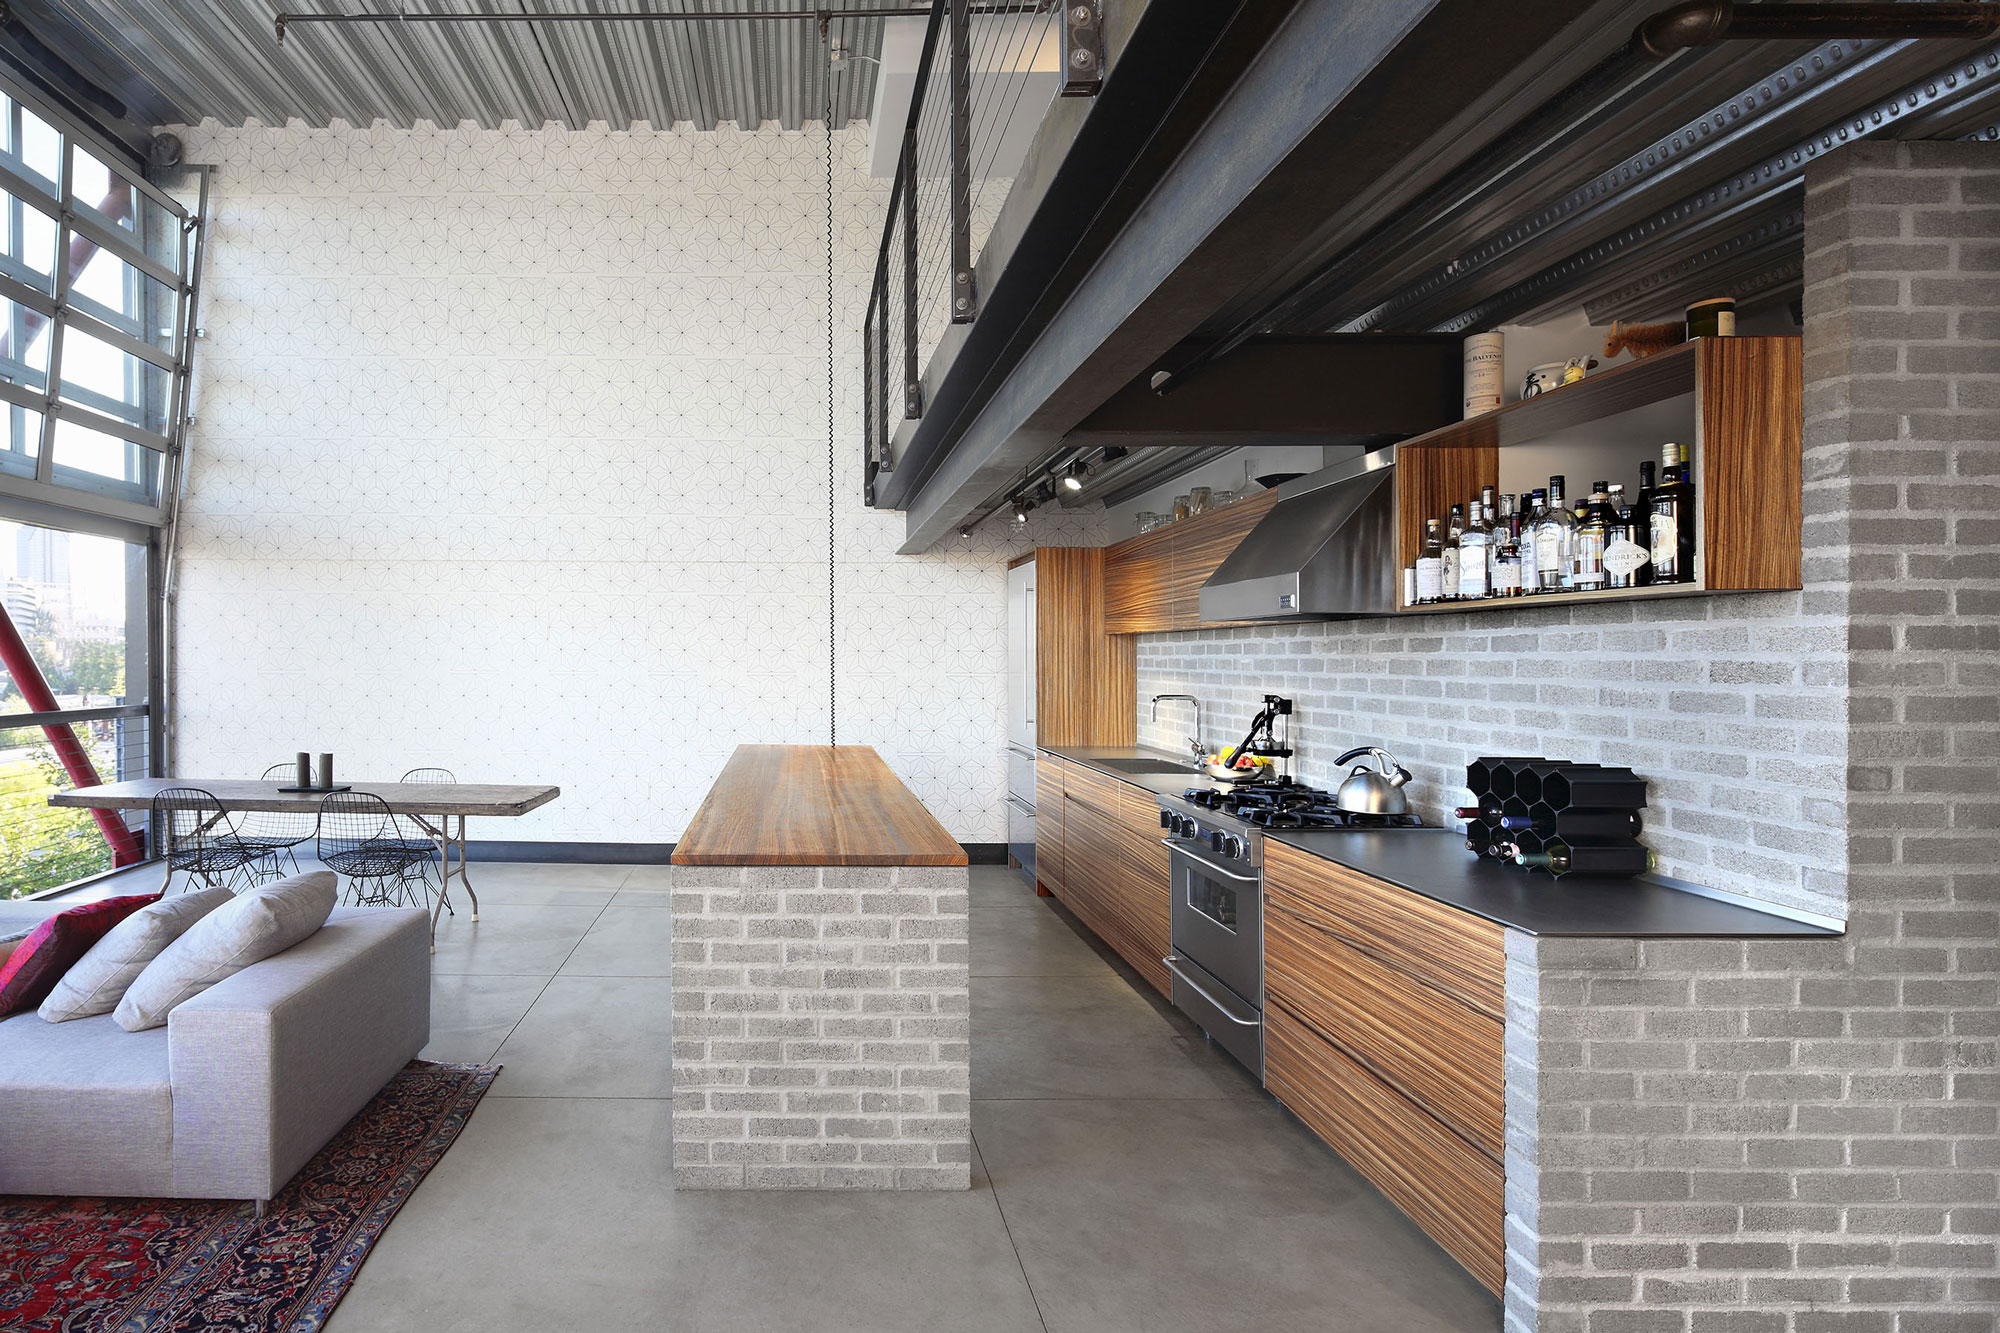 Renovation of capitol hill industrial loft in seattle by for Renovation design